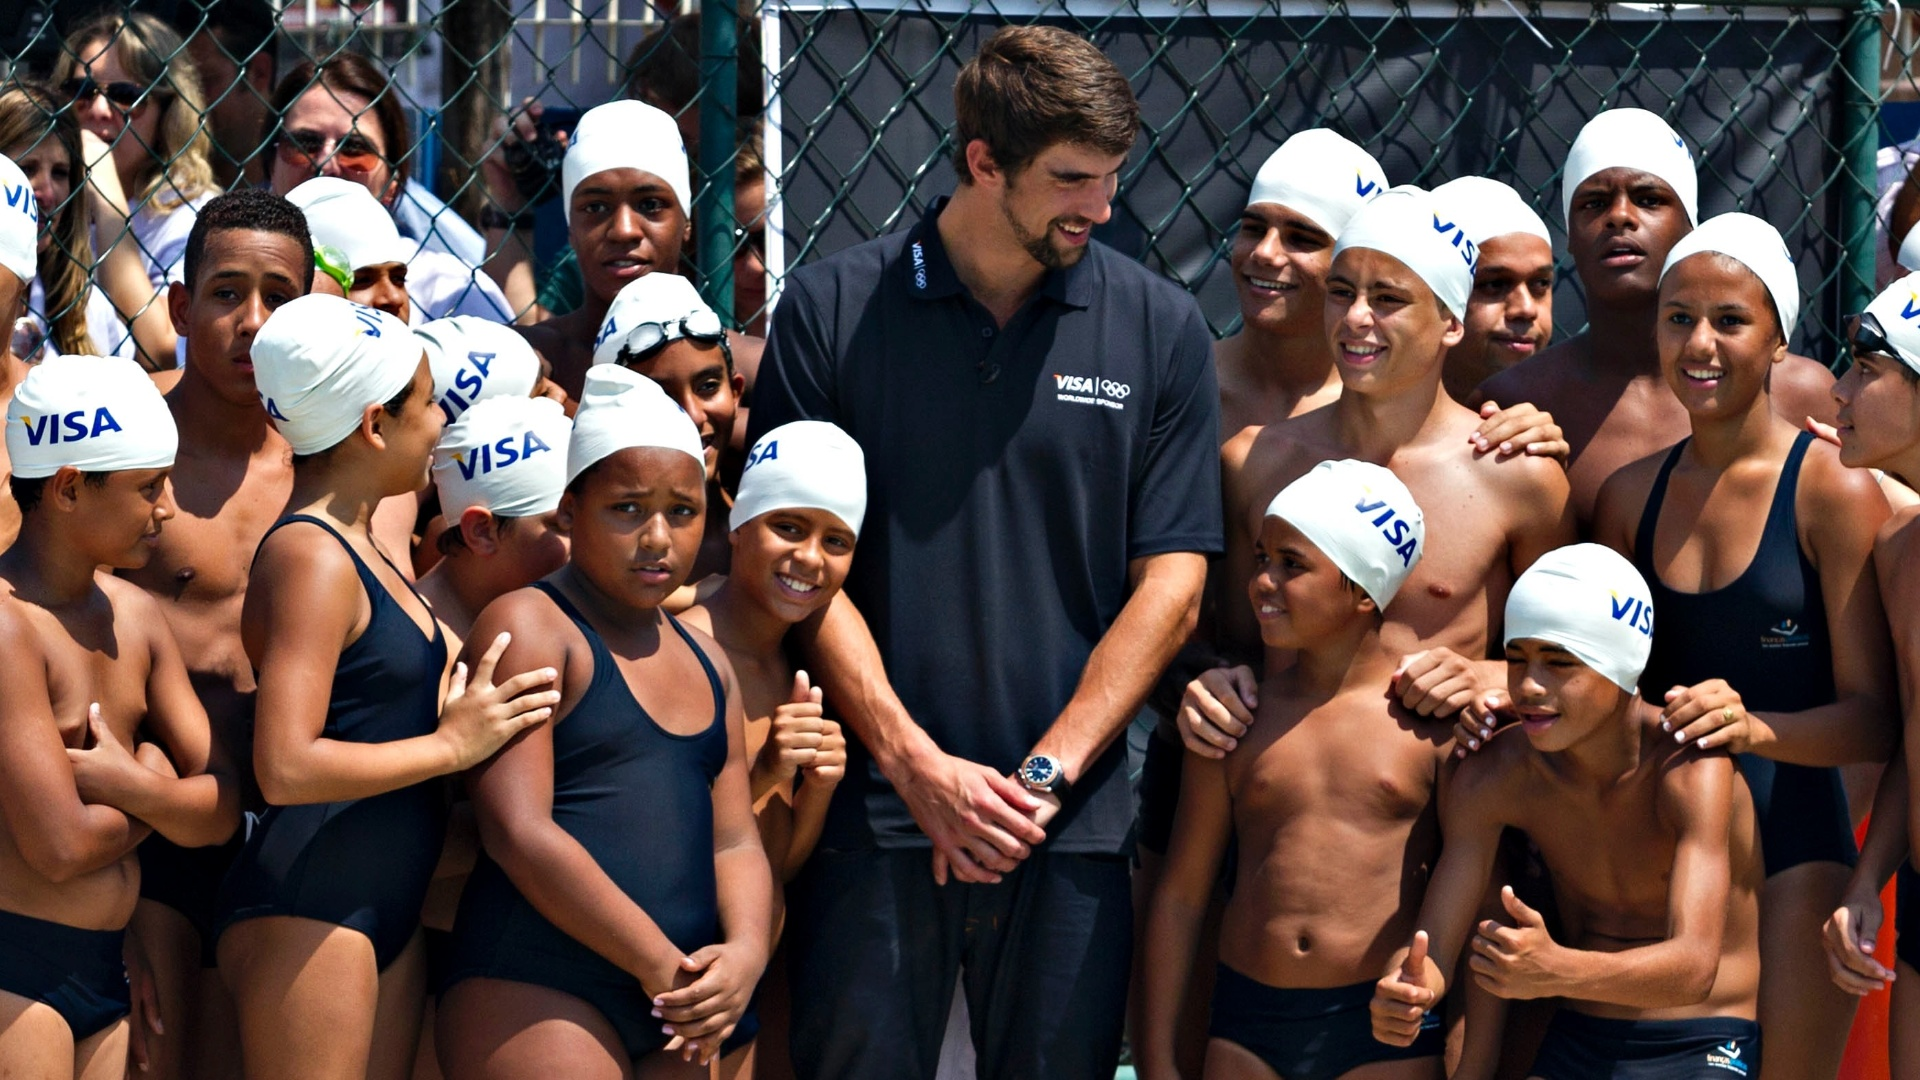 Phelps deu aula de natao para 20 crianas que participam da escolinha de natao da Vila Olmpica